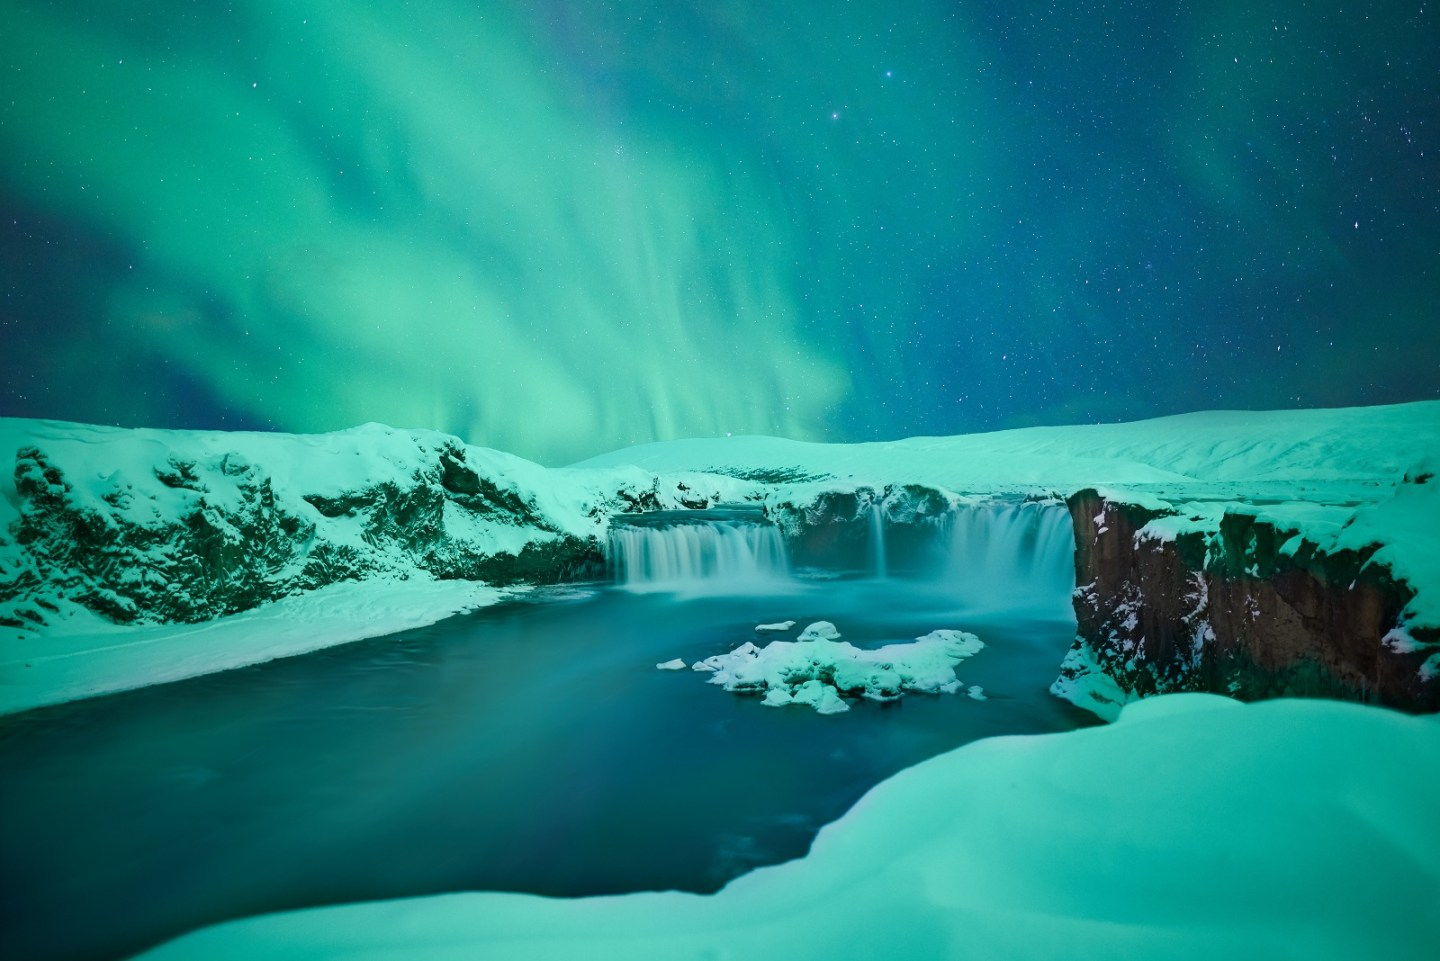 10 Reasons to go on Honeymoon to Iceland (in winter)